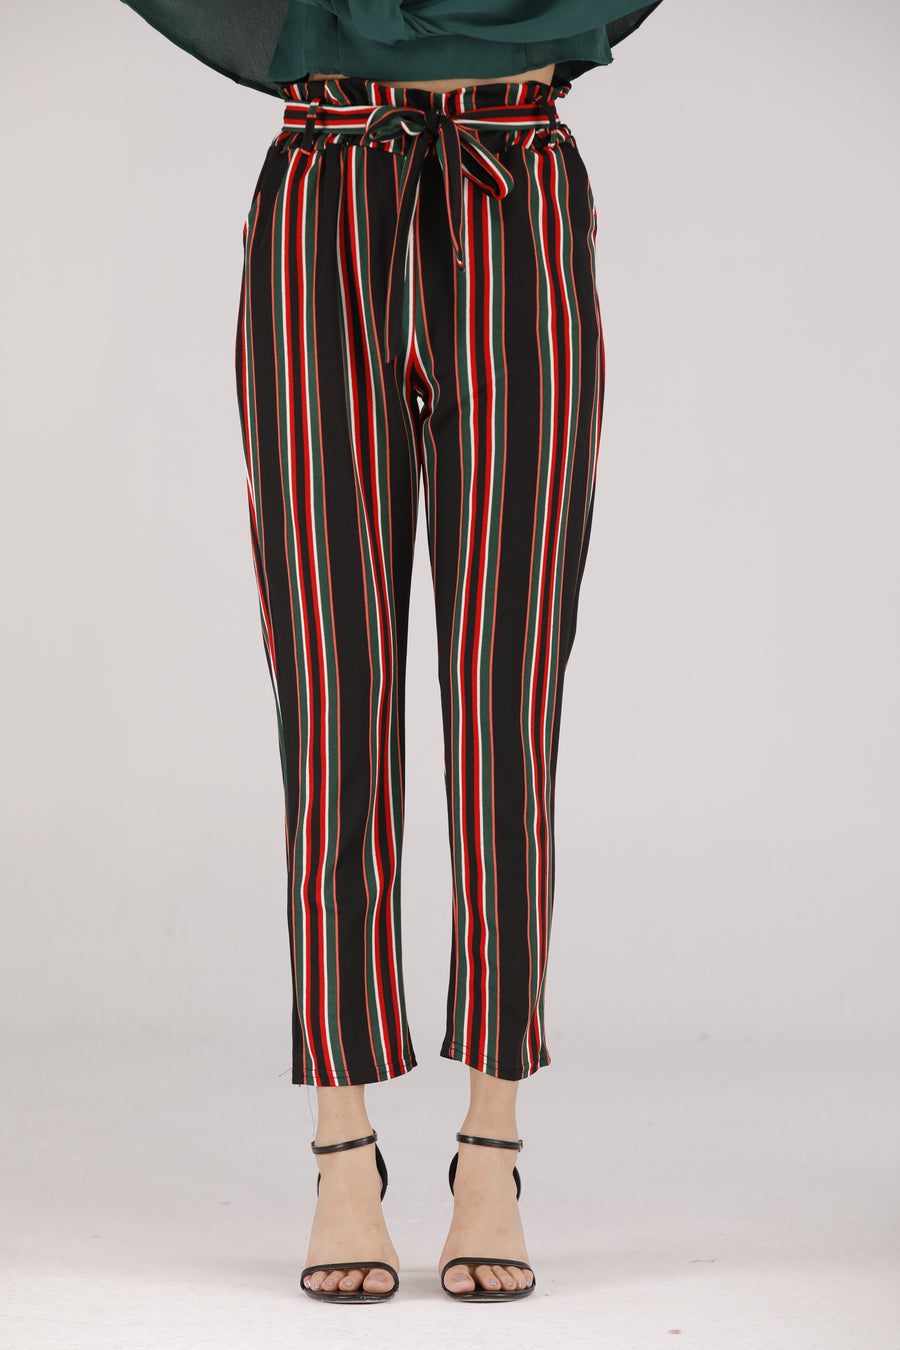 Mantra Pakistan Striped Pants wIth Tie Belt | BOTTOMS